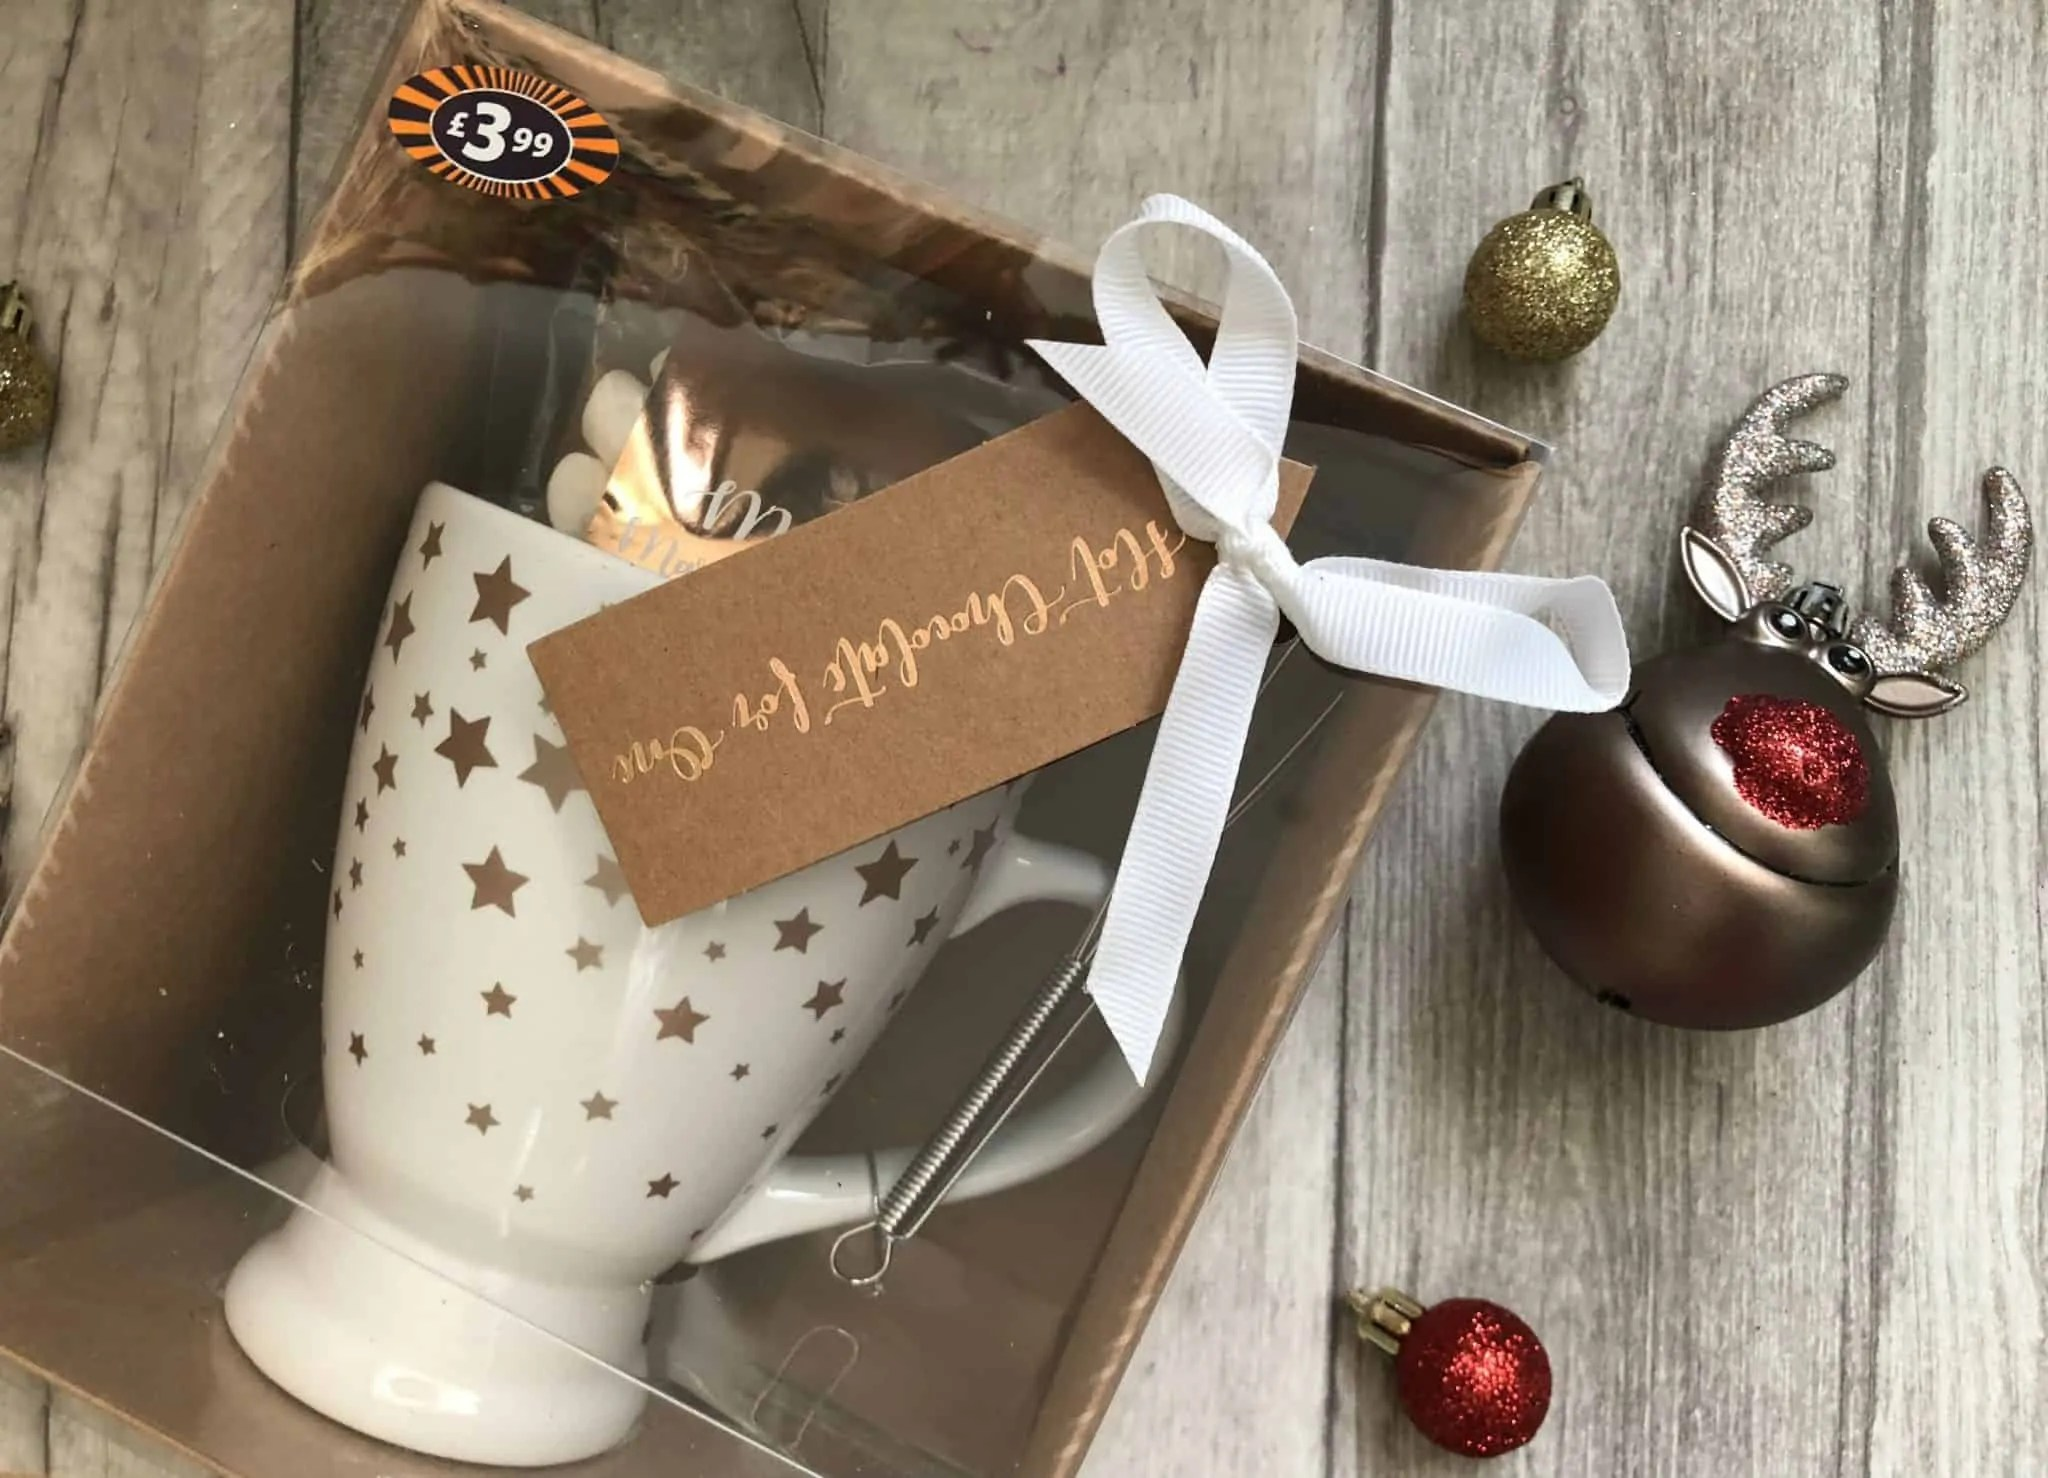 Last minute budget friendly Secret Santa gifts for her from B&M hot chocolate set